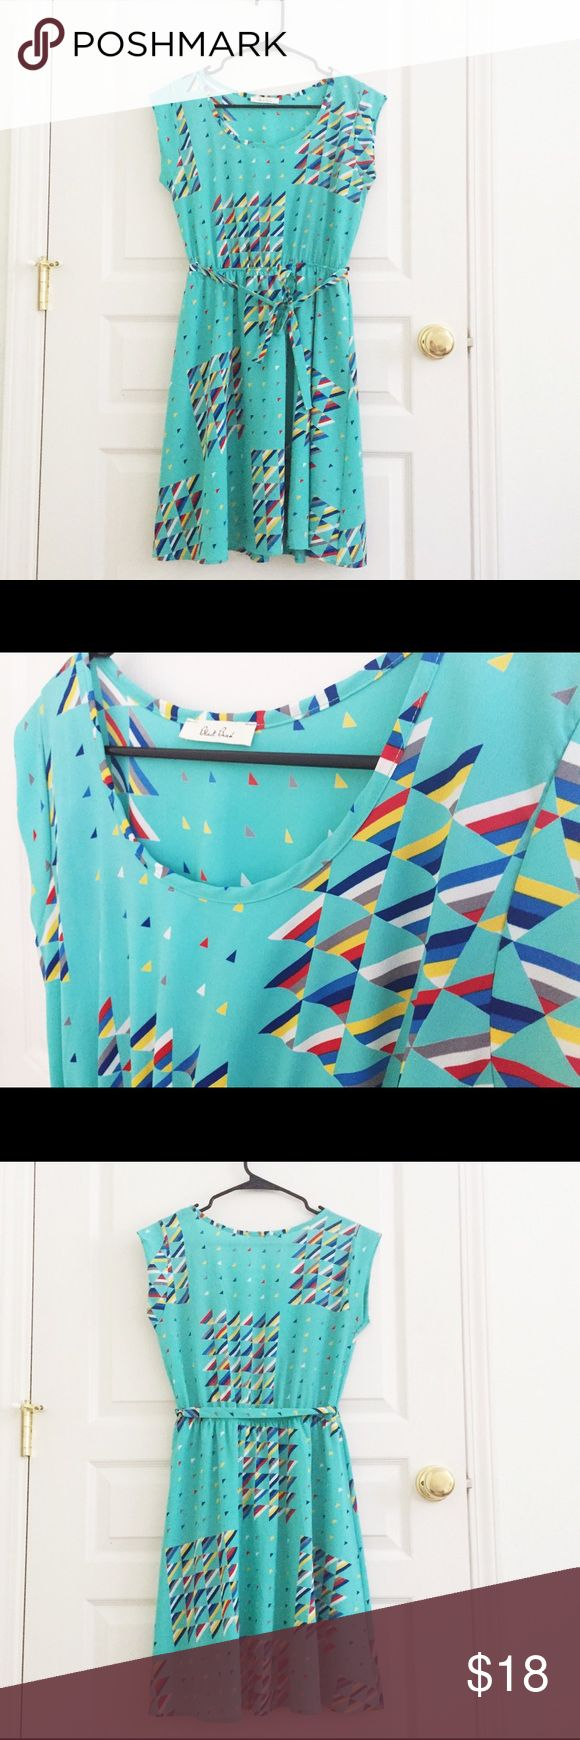 Selling this Teal geometric triangle dress hipster indie on Poshmark! My username is: wanderlust83. #shopmycloset #poshmark #fashion #shopping #style #forsale #Black Bead #Dresses & Skirts